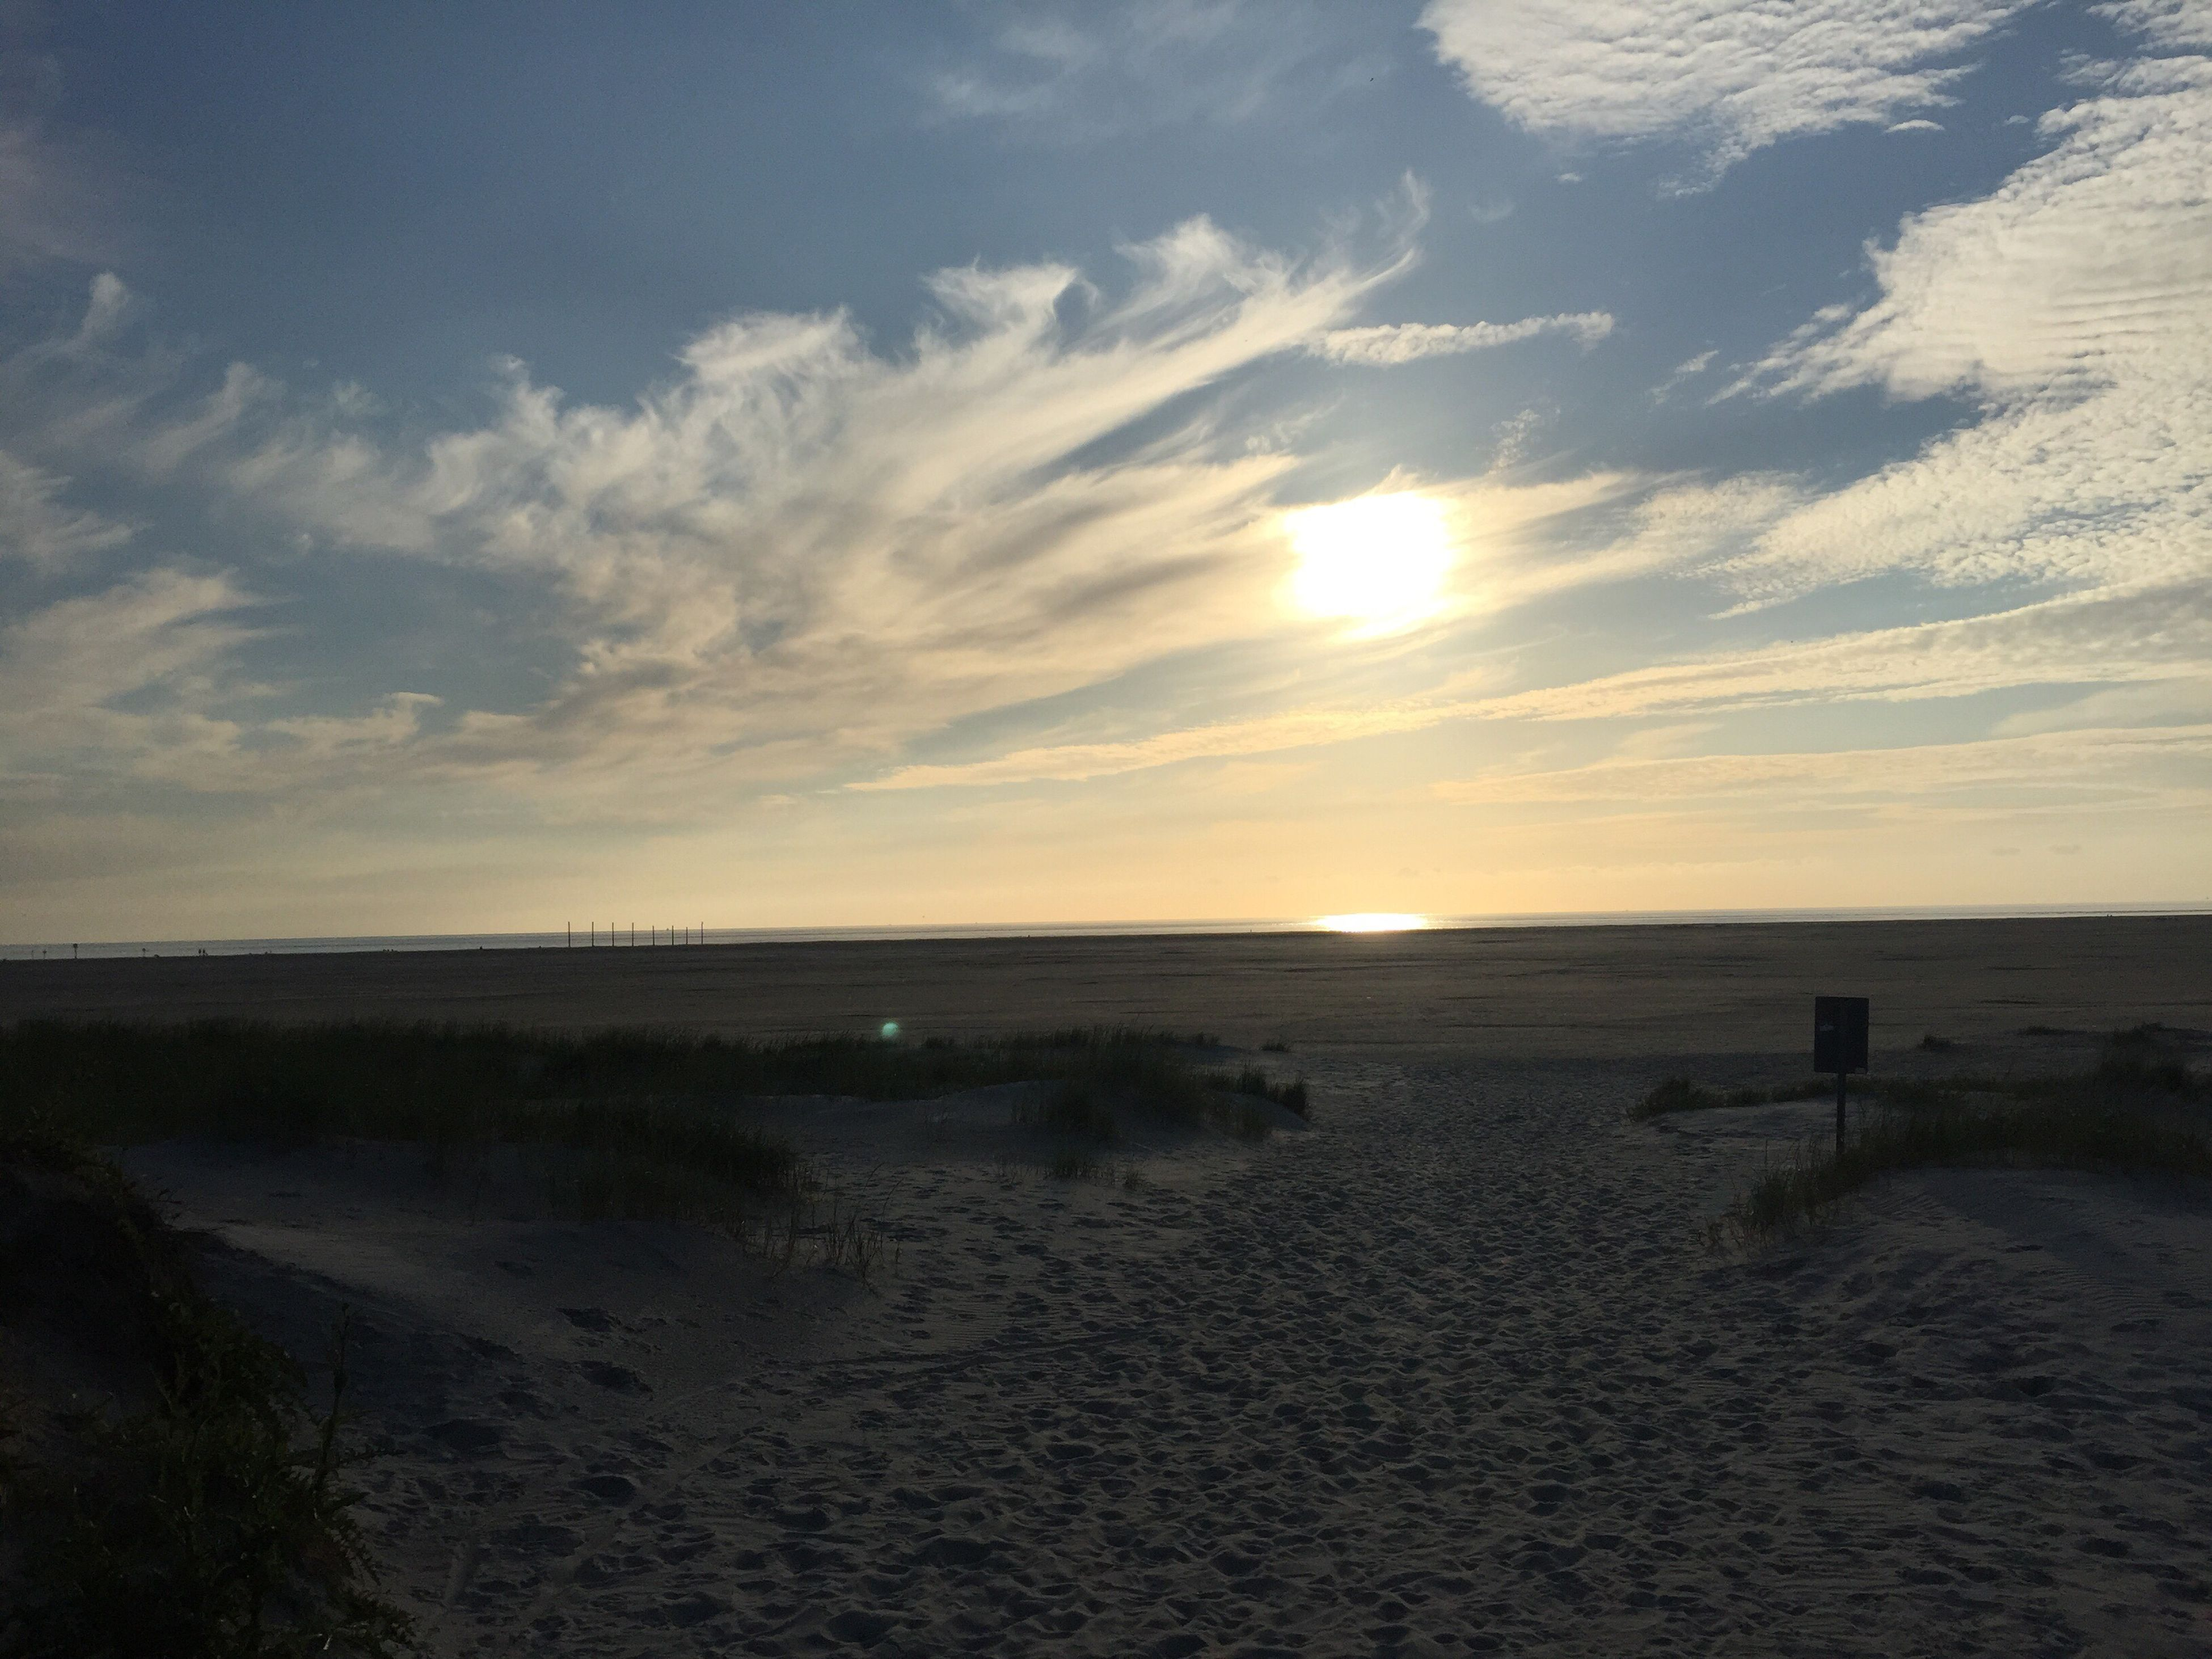 beach, sea, sand, nature, horizon over water, sunset, water, sky, beauty in nature, outdoors, tranquility, scenics, cloud - sky, no people, tranquil scene, day